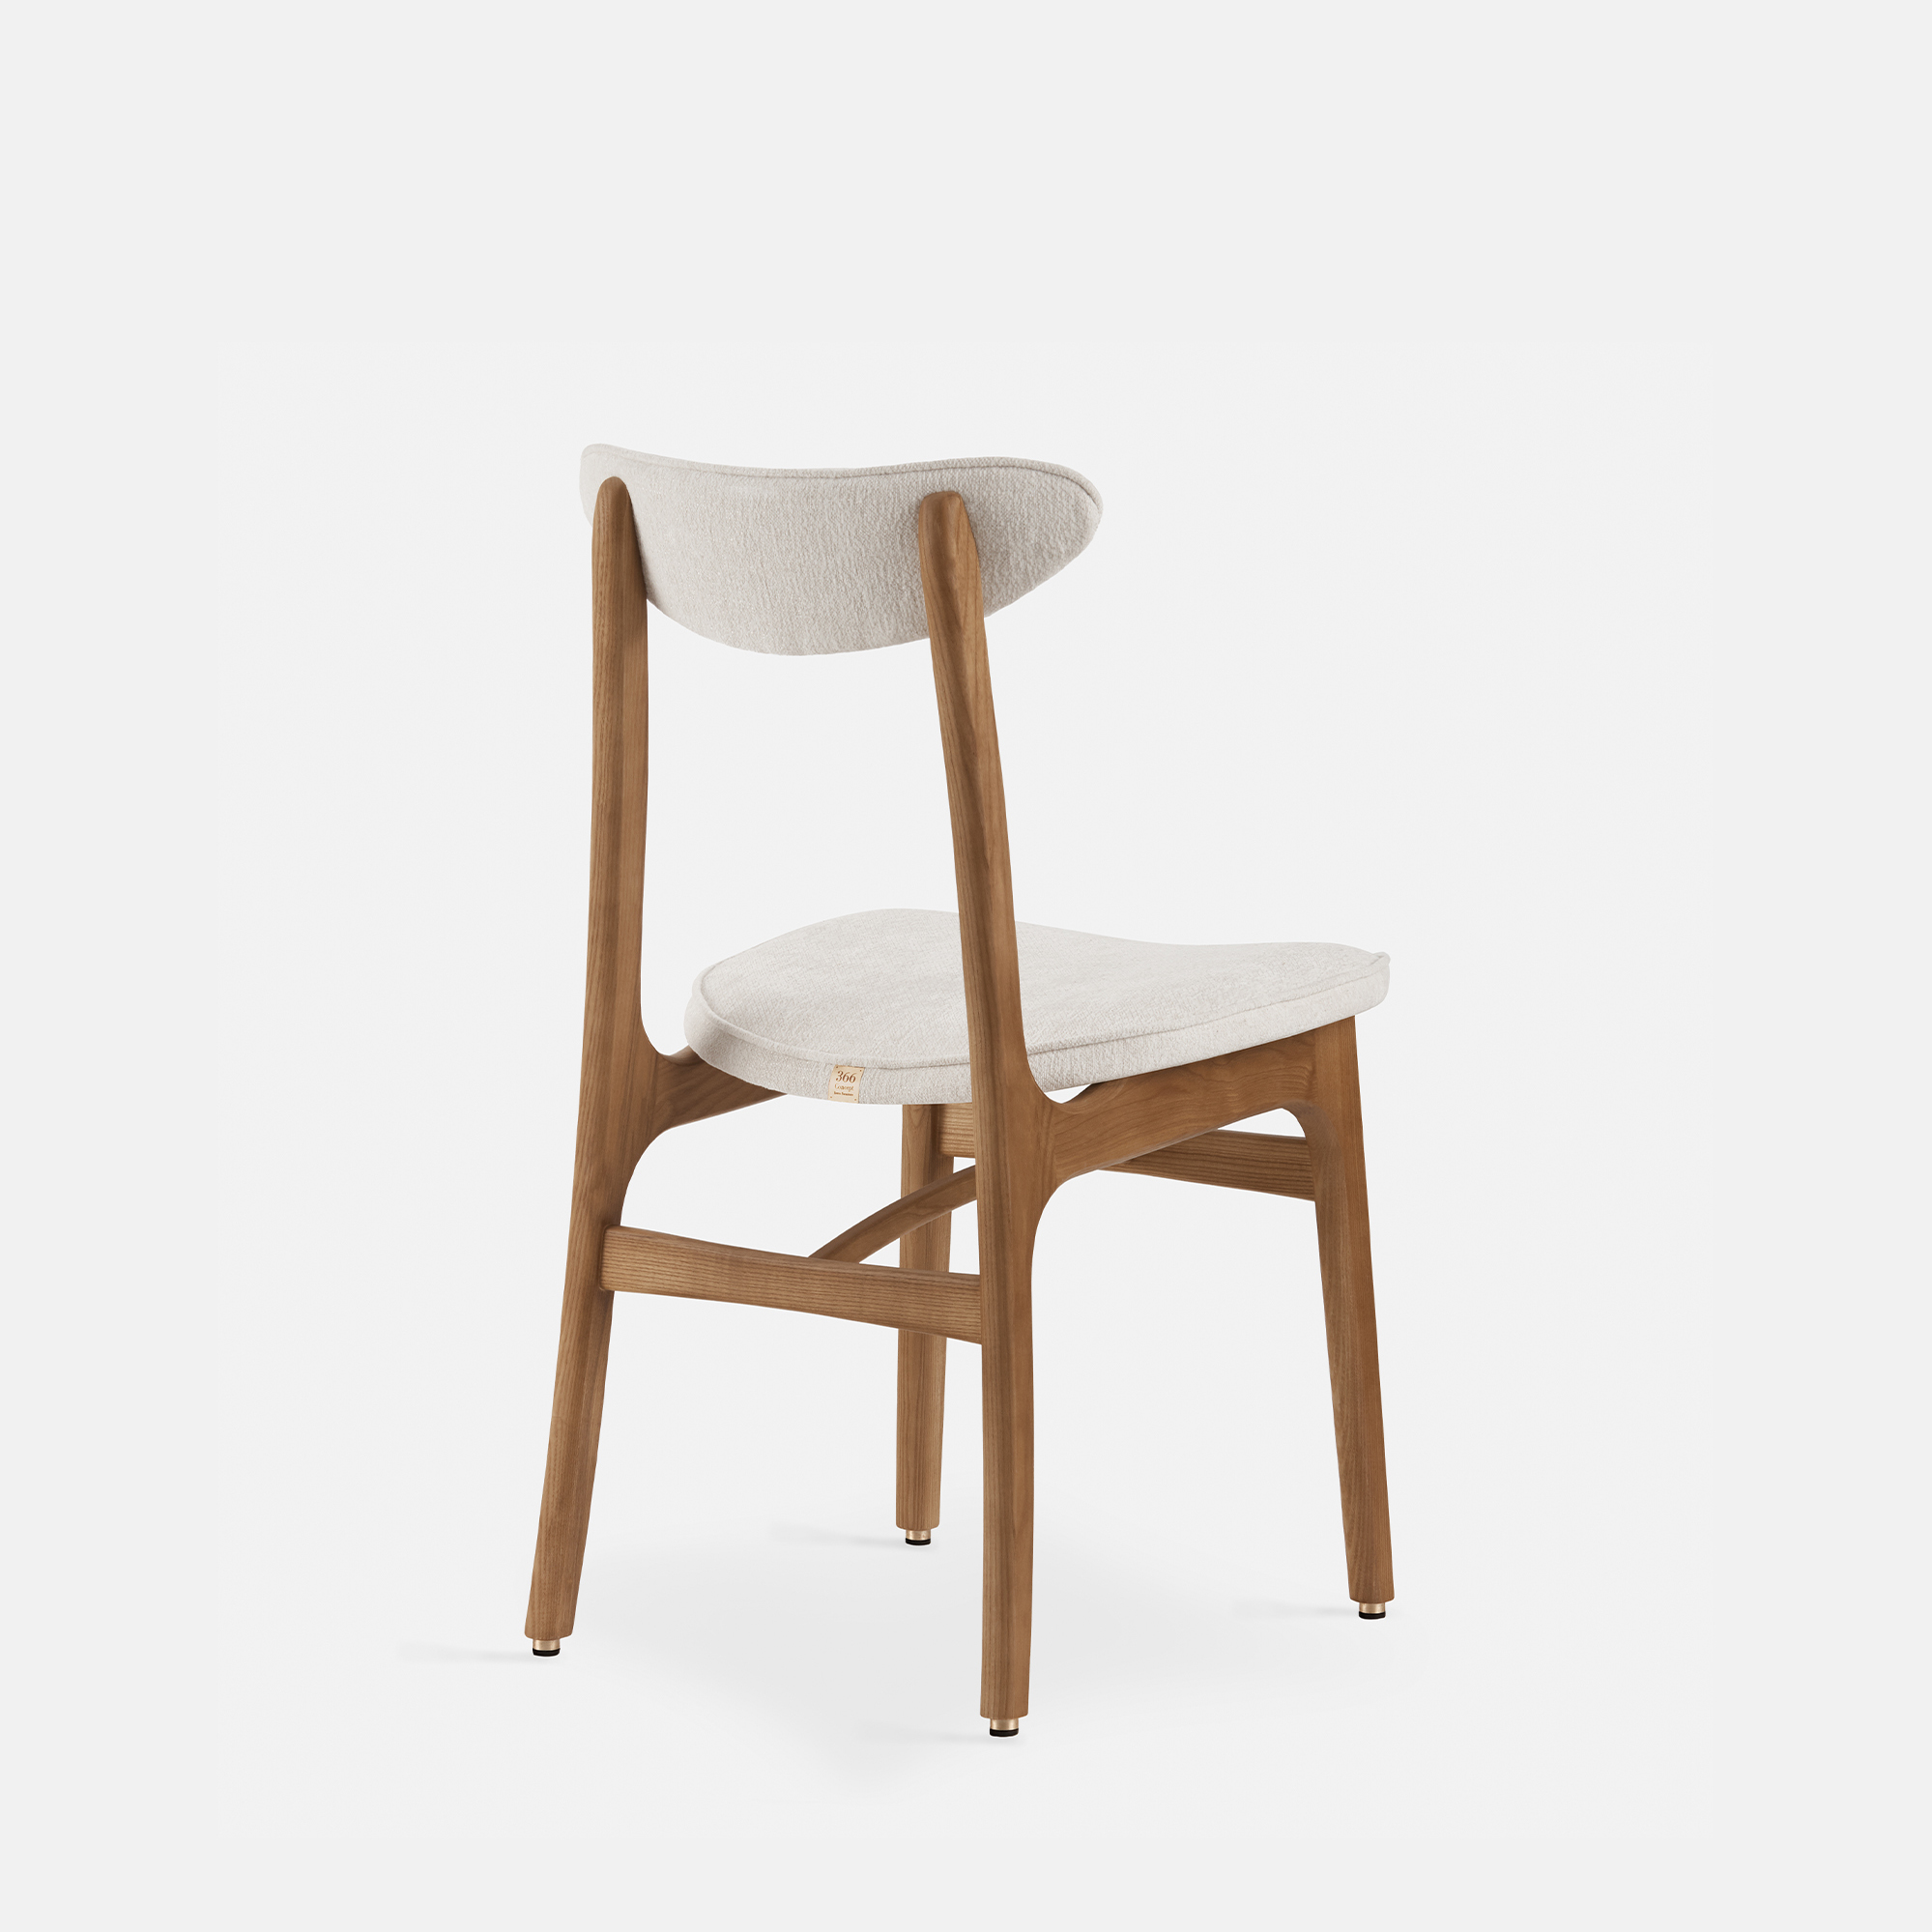 366-Concept-200-190-Chair-W02-Marble-White-back